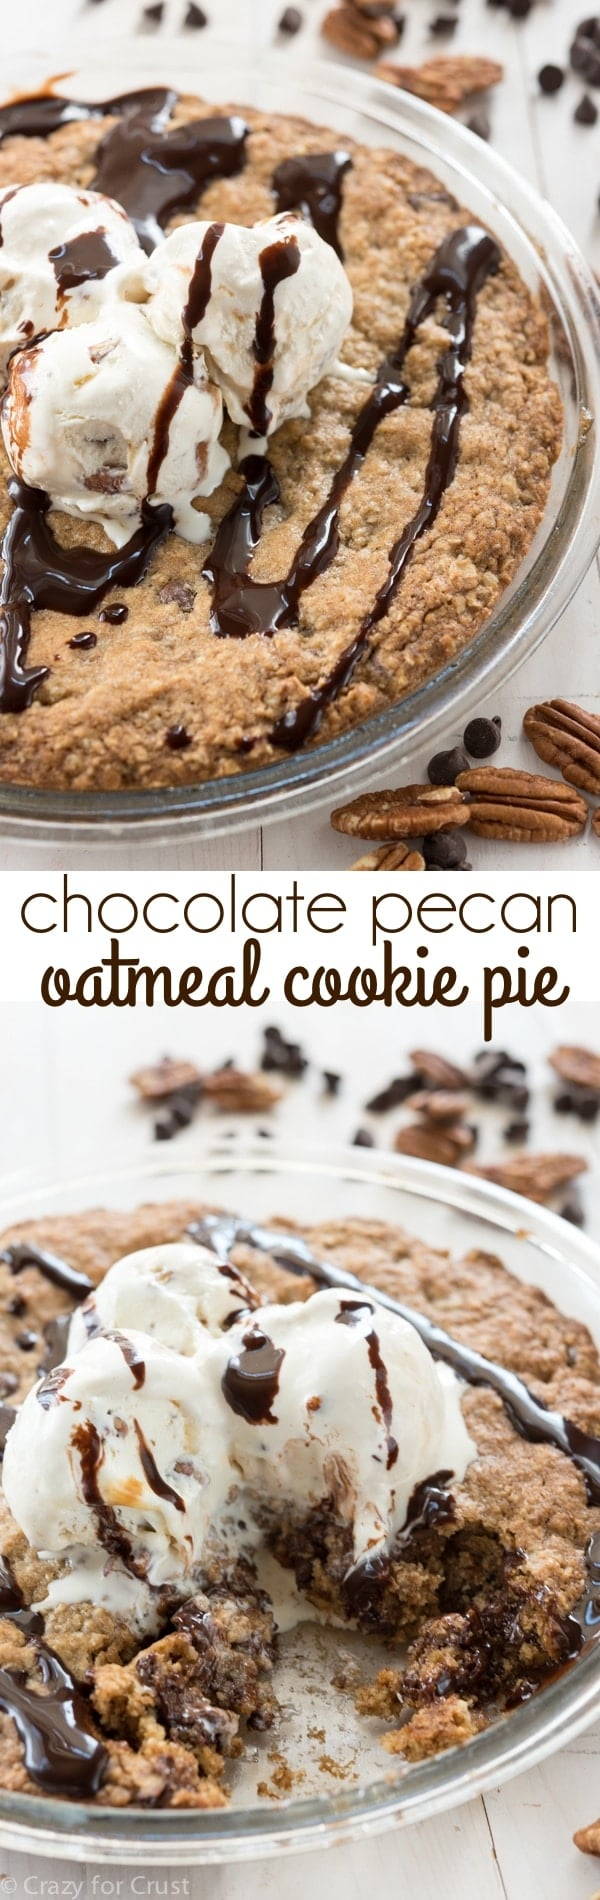 Chocolate Pecan Oatmeal Cookie Pie - Crazy for Crust